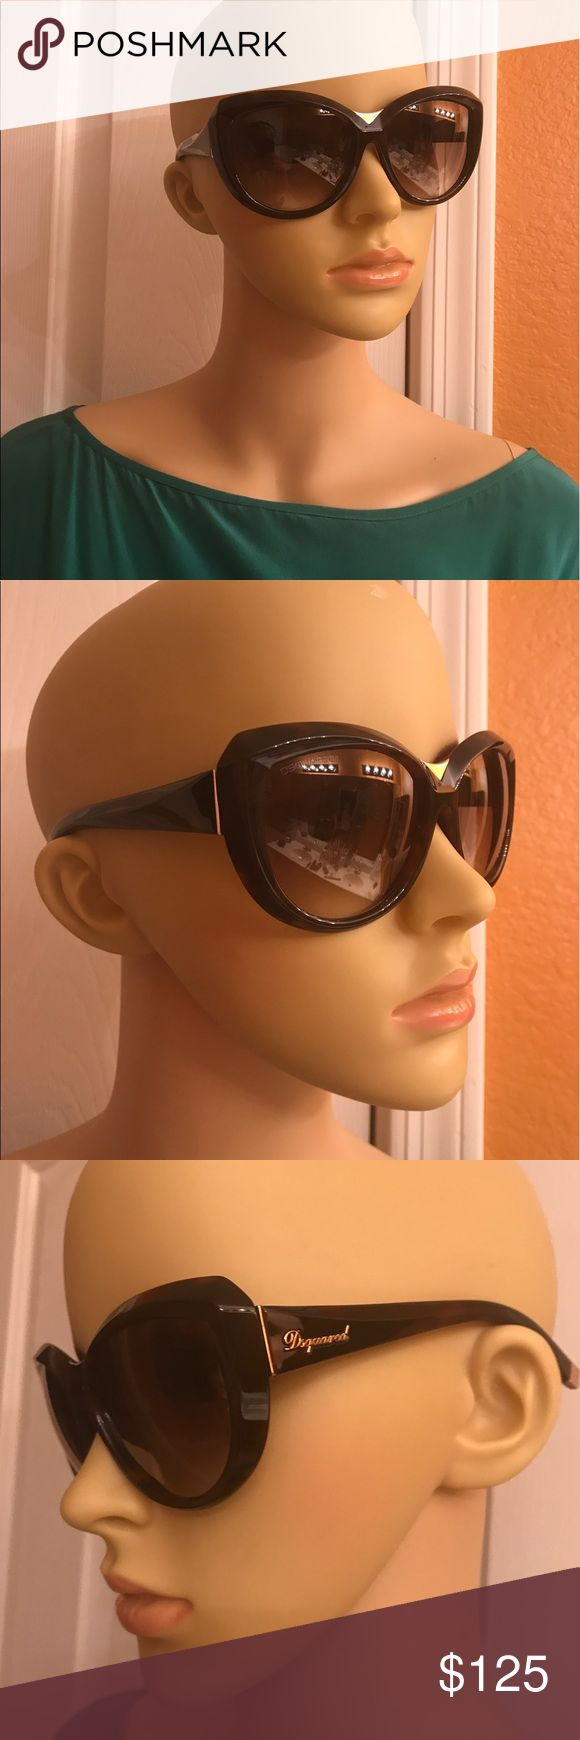 Dsquared Sunglasses Authentic Dsquared Sunglasses, in great condition, used. Missing one of the covers that go behind the ear, as pictured in last picture. No trades! DSQUARED Accessories Sunglasses